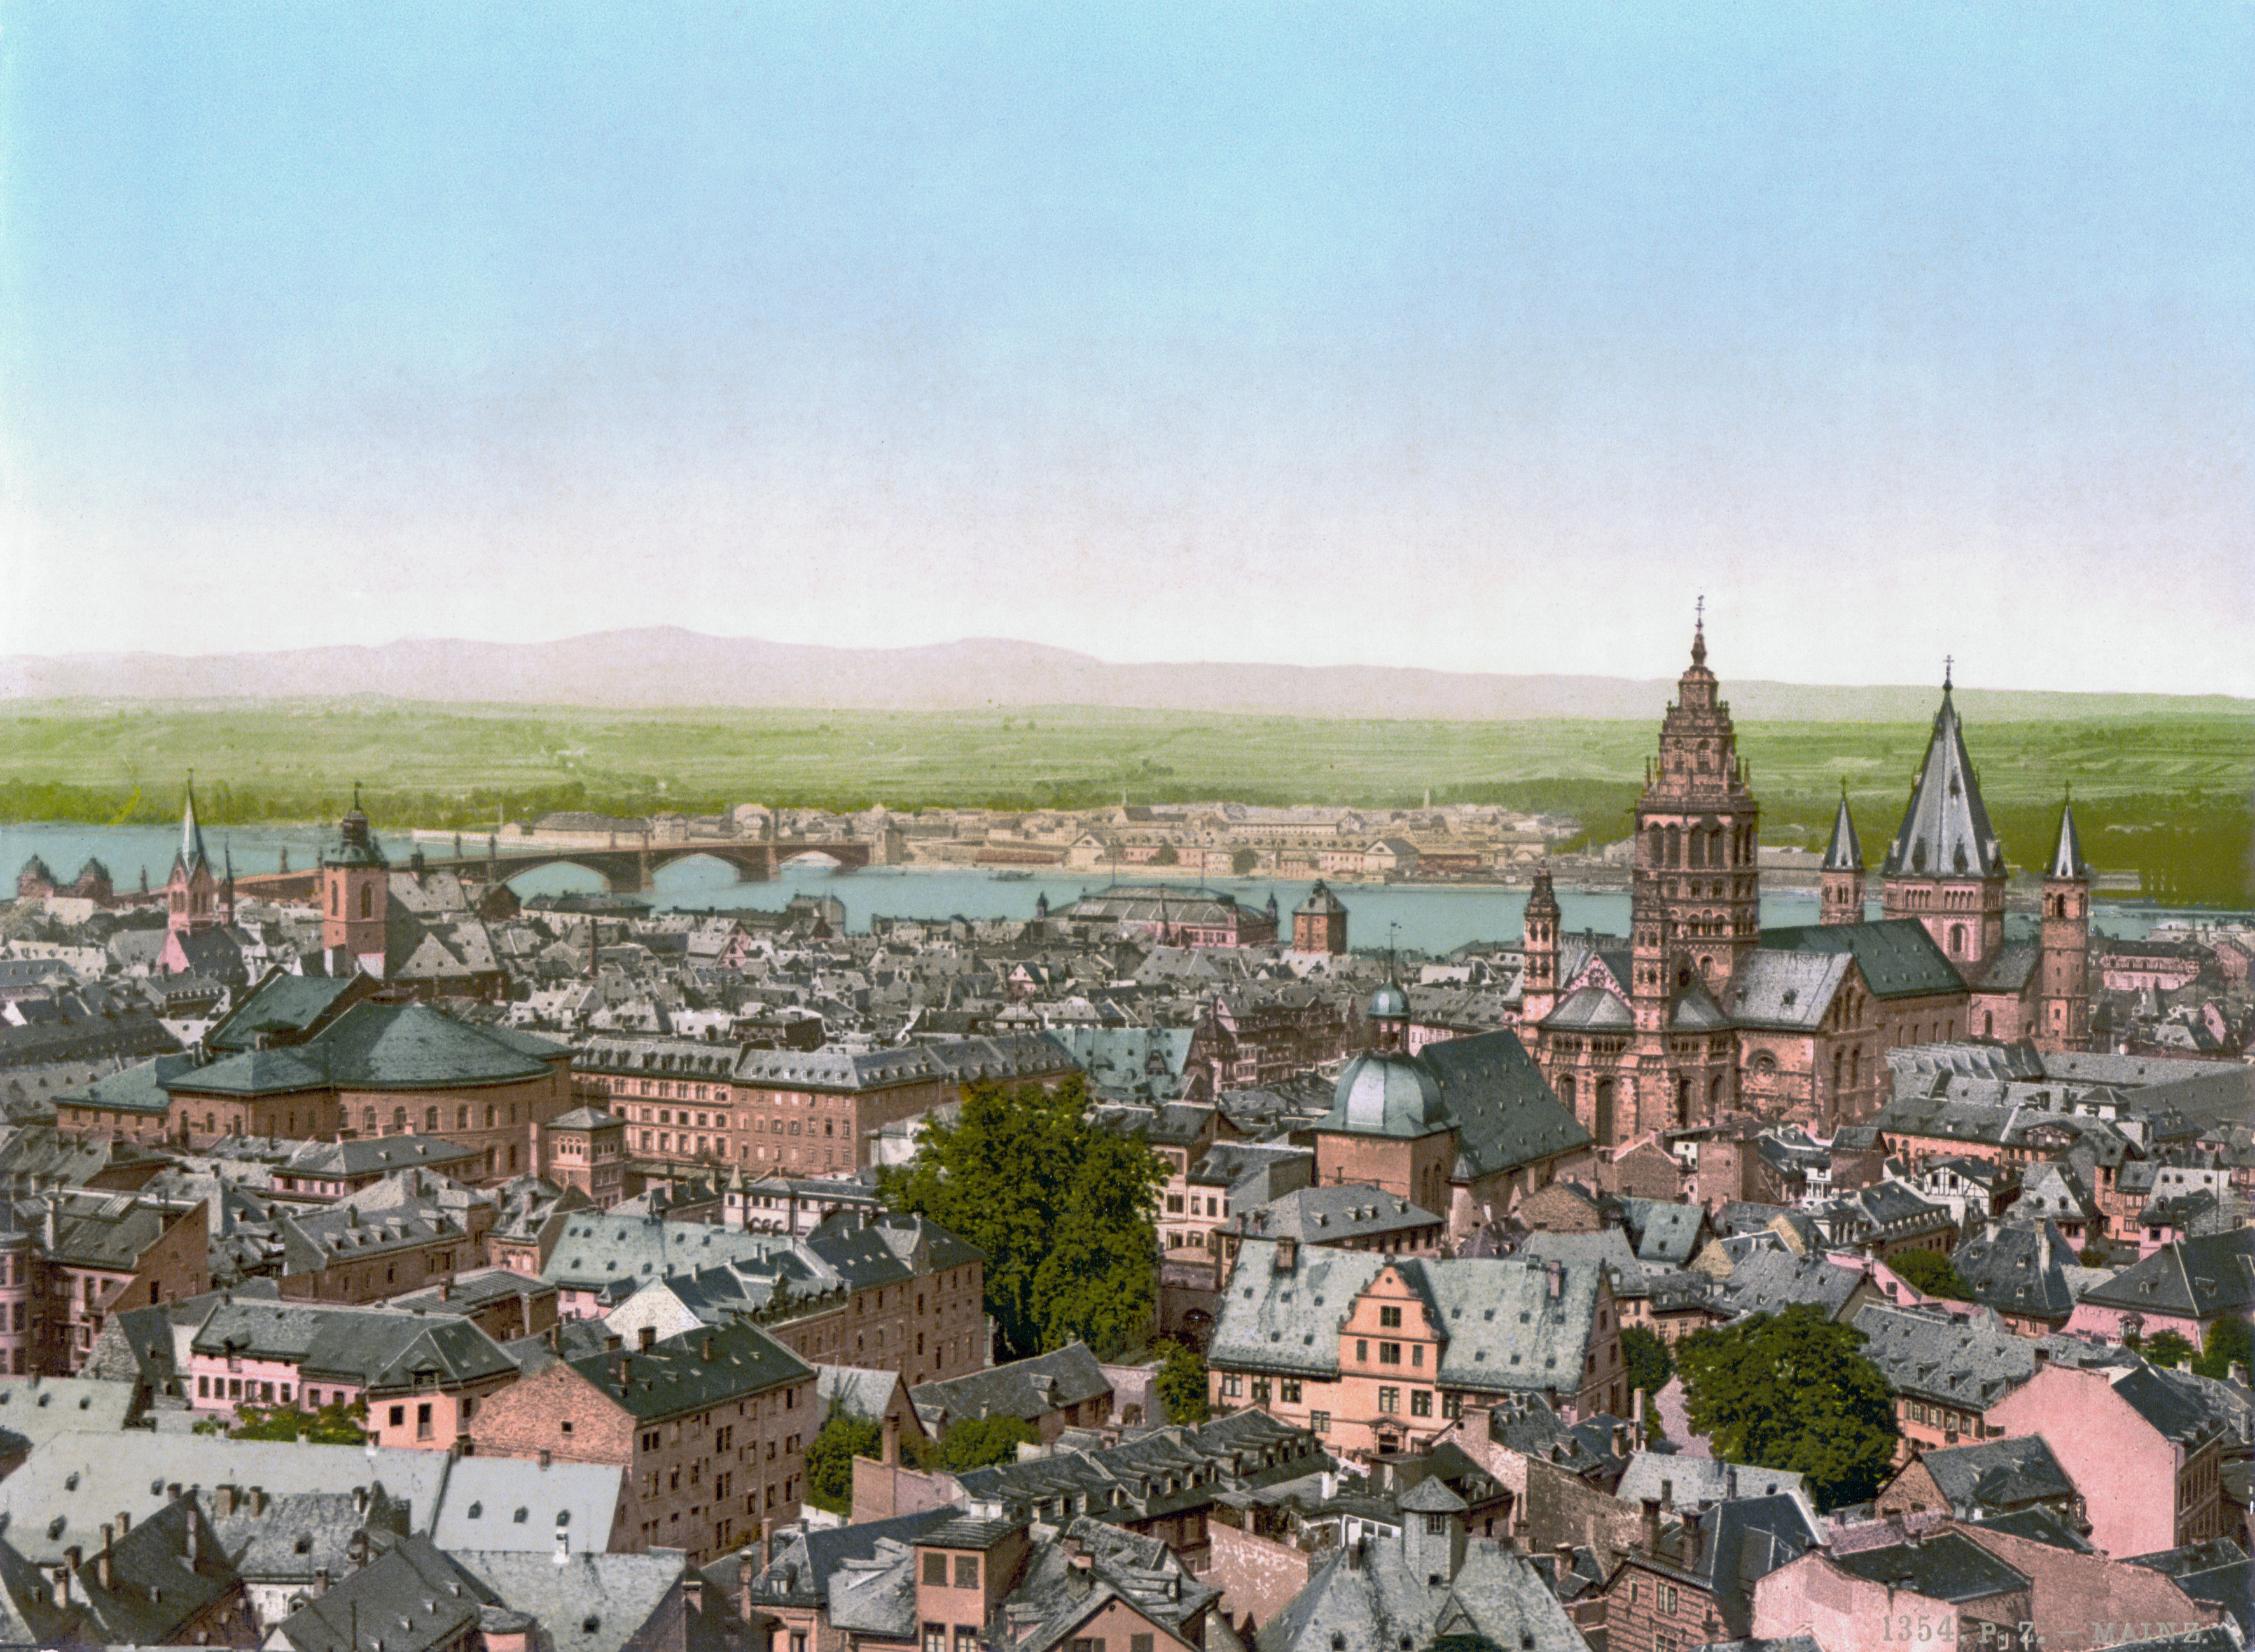 https://upload.wikimedia.org/wikipedia/commons/d/d2/Mainz_BlickzumRhein_1890.jpg